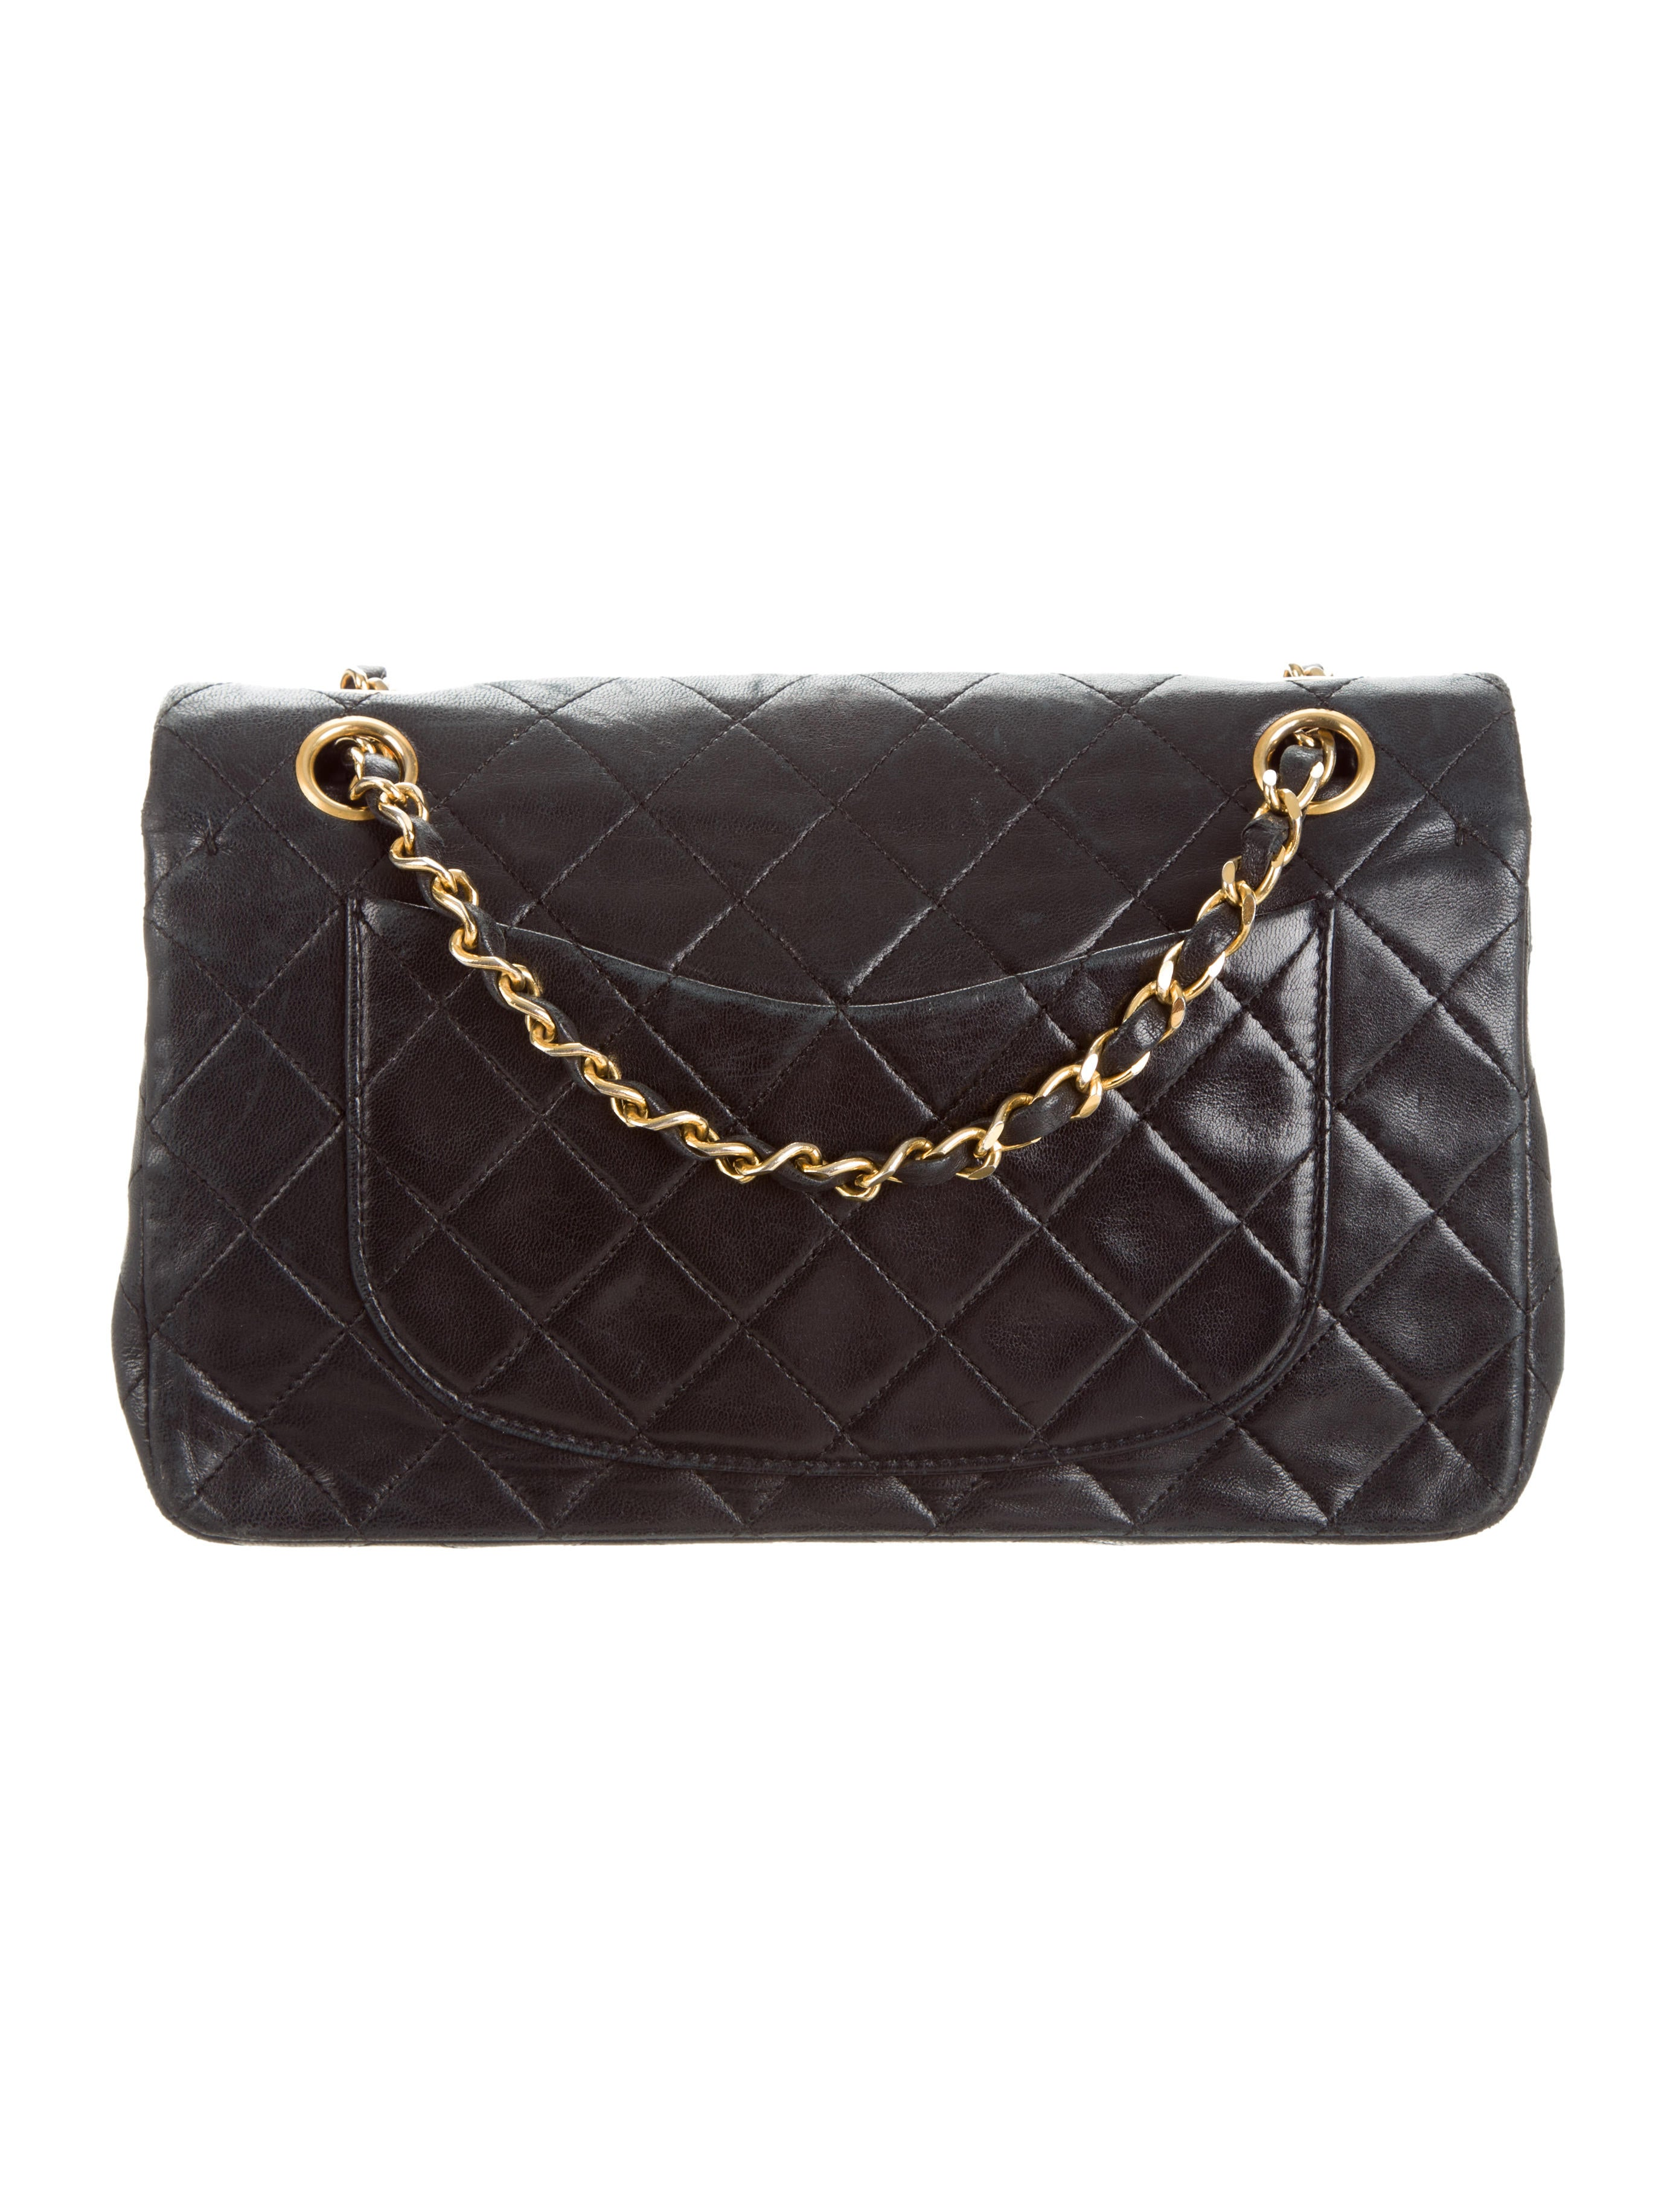 7643518845af Chanel Classic Small Double Flap Bag - Handbags - CHA180782 | The RealReal